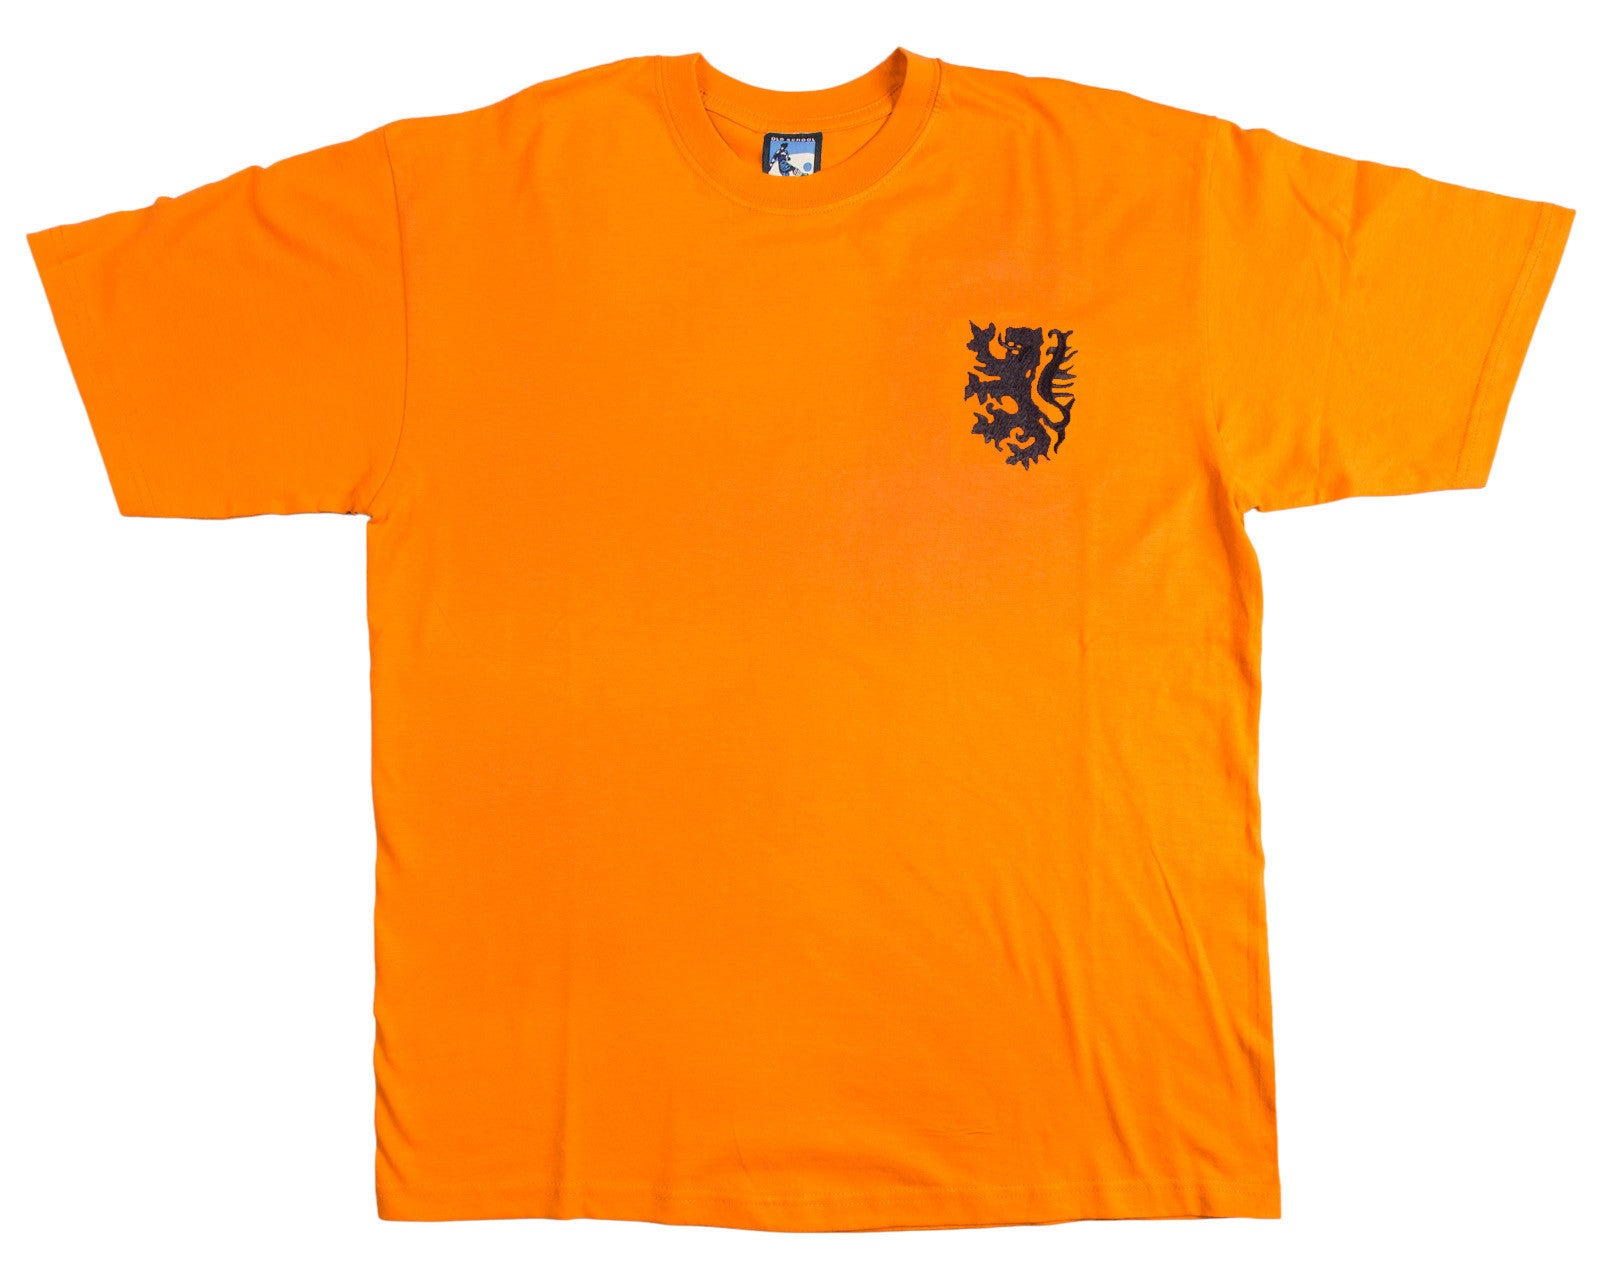 Holland Retro Football T Shirt 1970s Netherlands - Old School Football